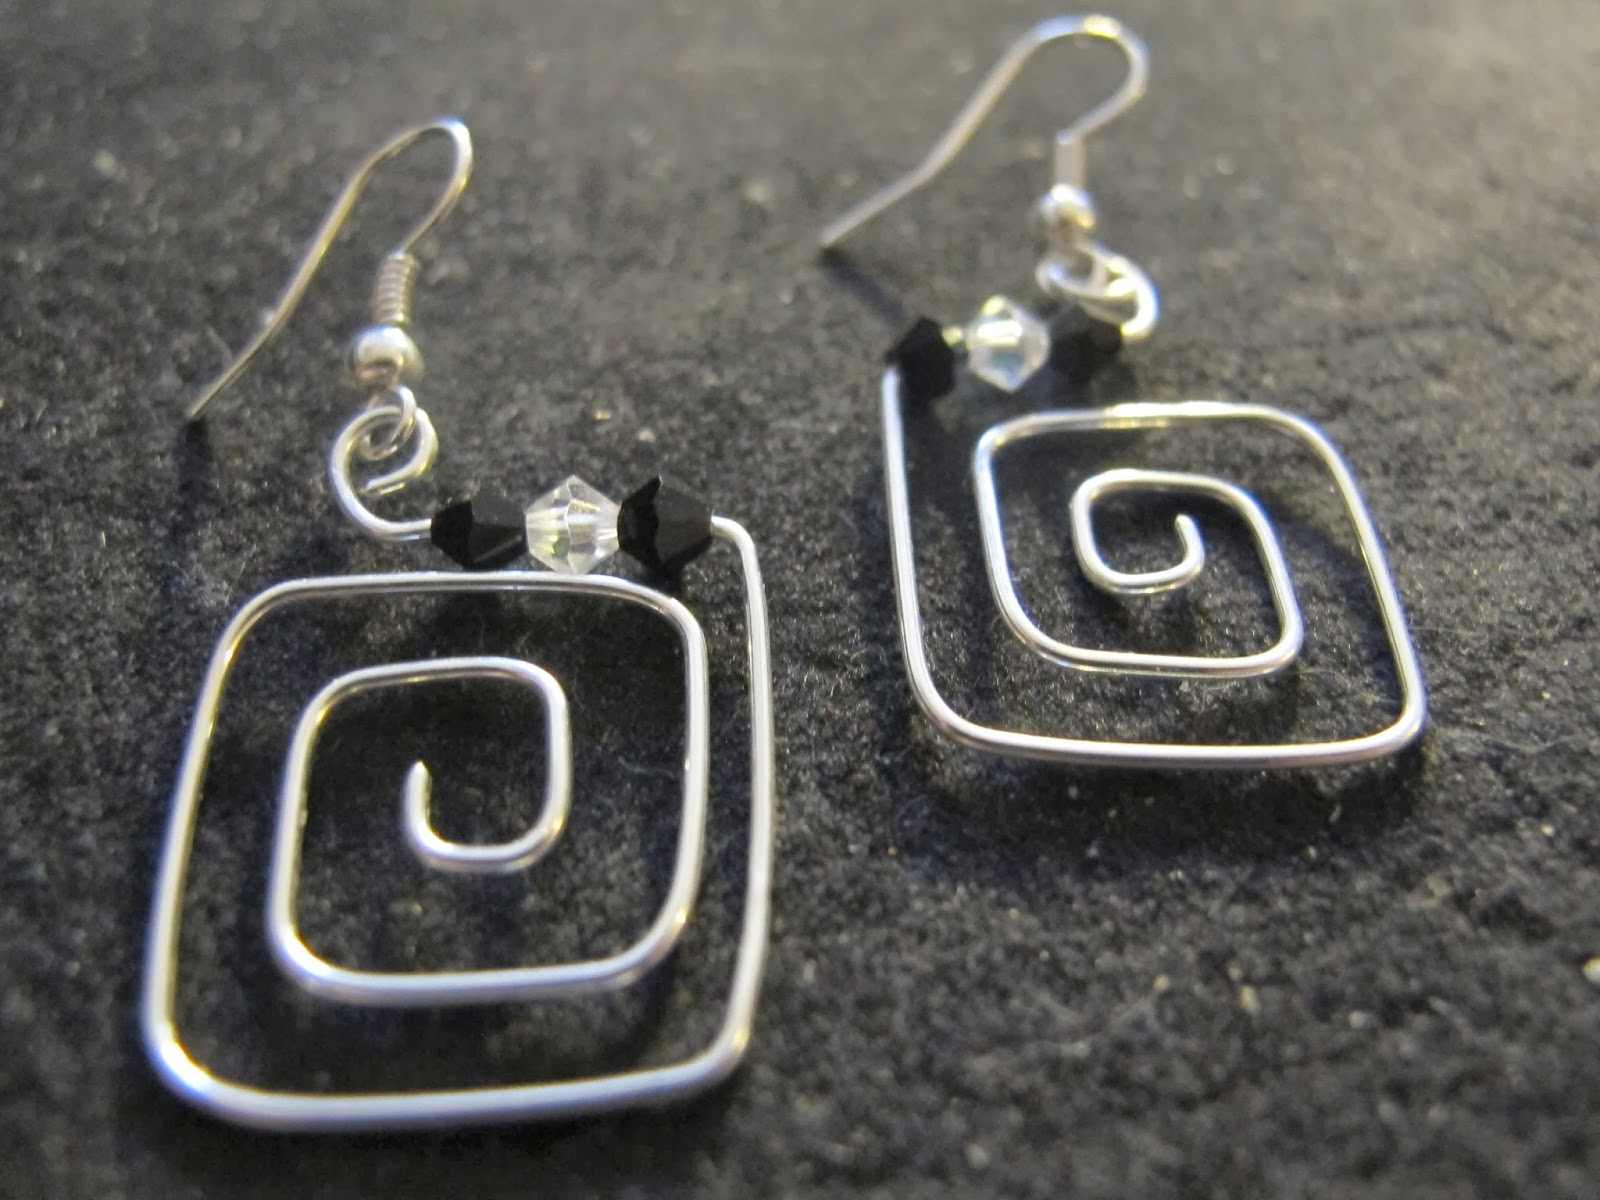 The Latest Wire Wred Earrings That I Made For Her Are These Silver Squares With Black And Clear Swarovski Crystals